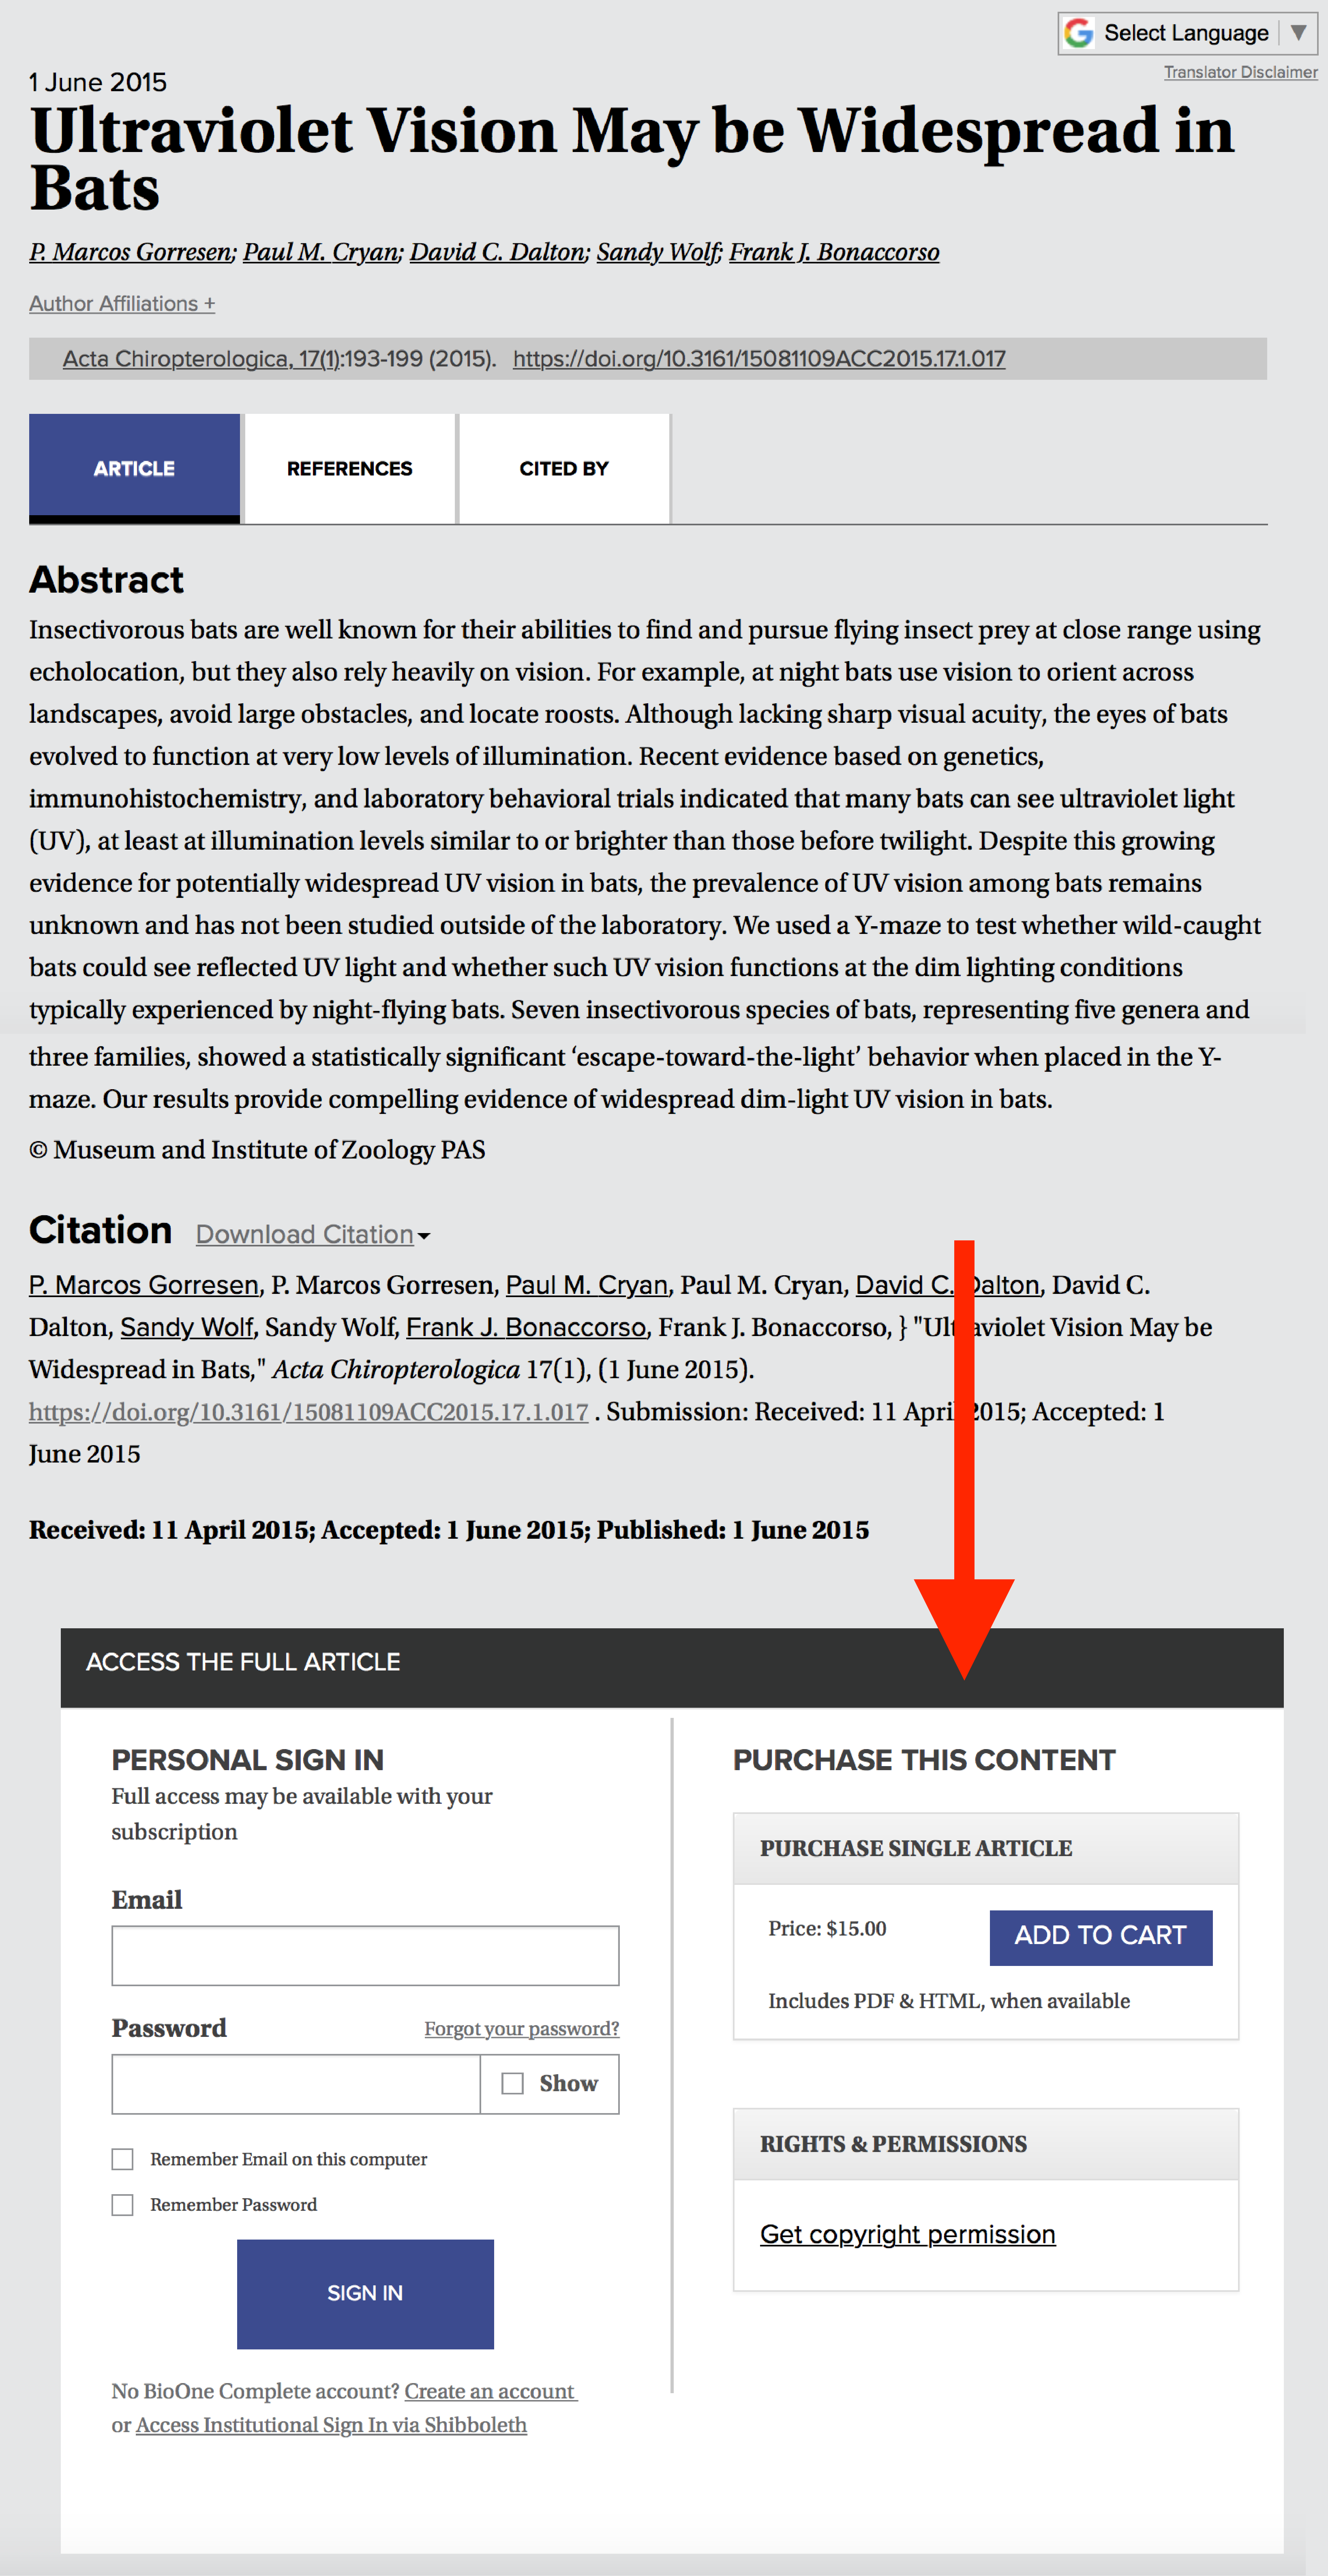 A screenshot of an article page with a red arrow indicating the Purchase Article option.